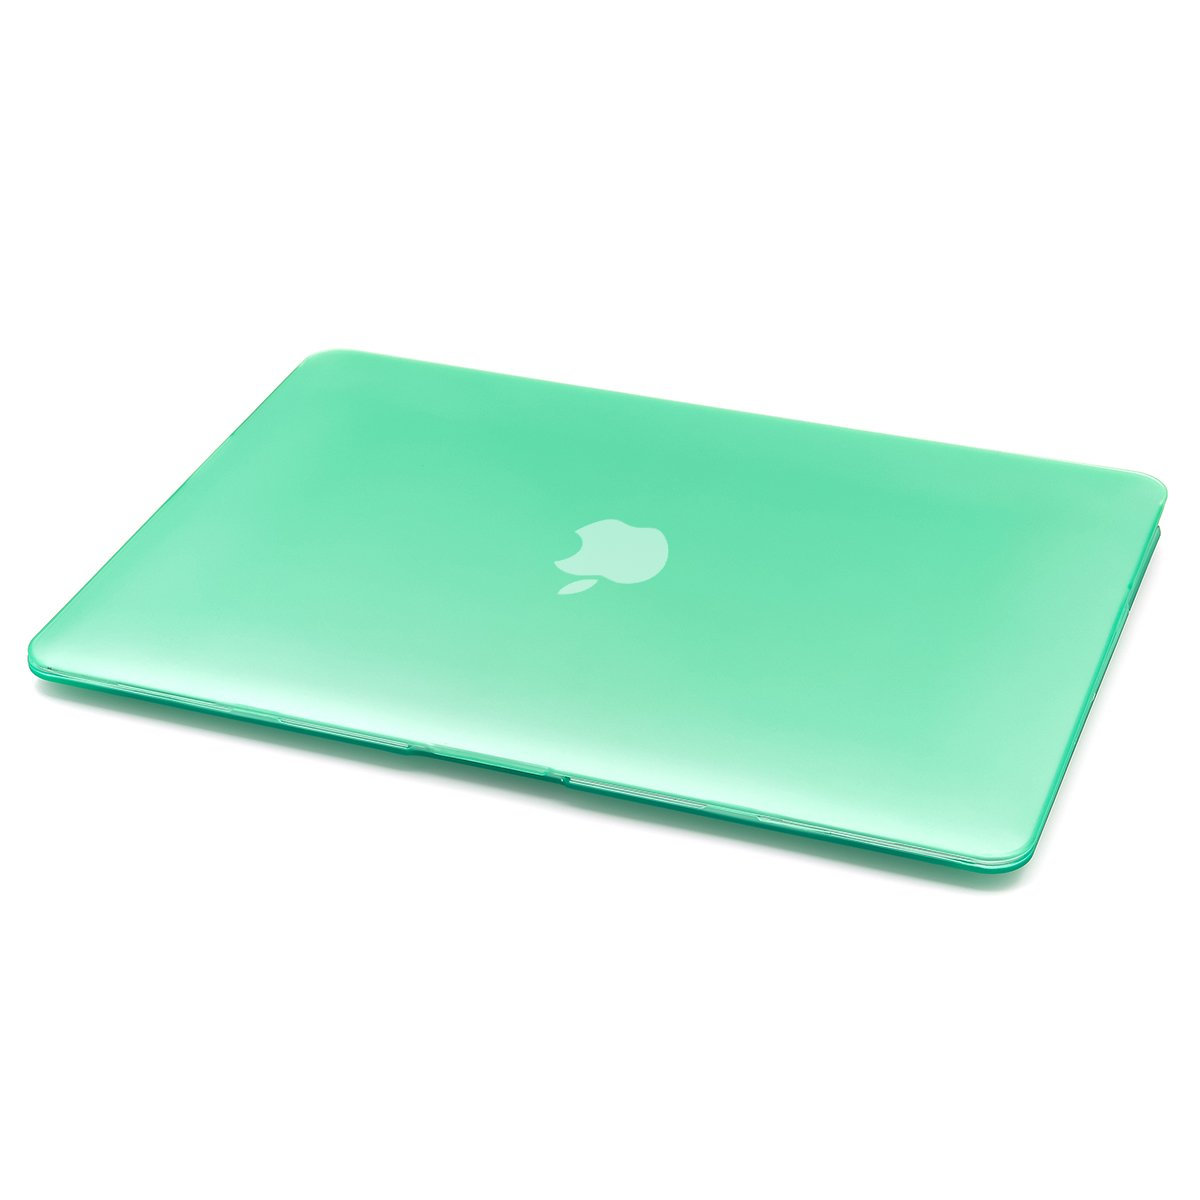 with Keyboard Cover and Port Plugs 13-inch, Mid 2009 to 2017 Matte Finish Case with Rubber Feet Previous Generation LENTION Hard Case for MacBook Air - Model A1369 and A1466 - Frost Green